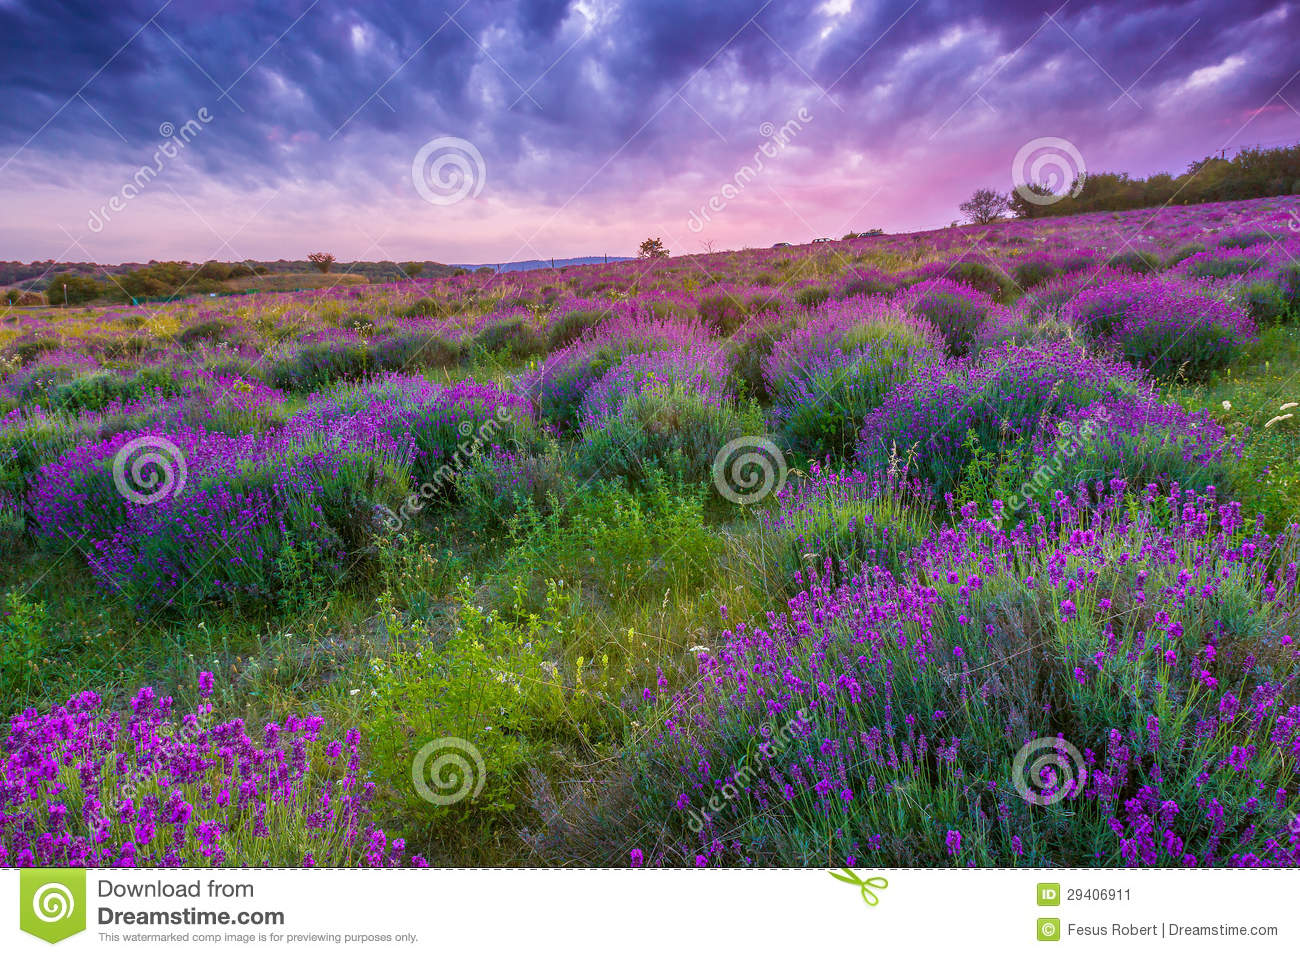 Sunset Over A Summer Lavender Field In Tihany, Hungary Stock Image.